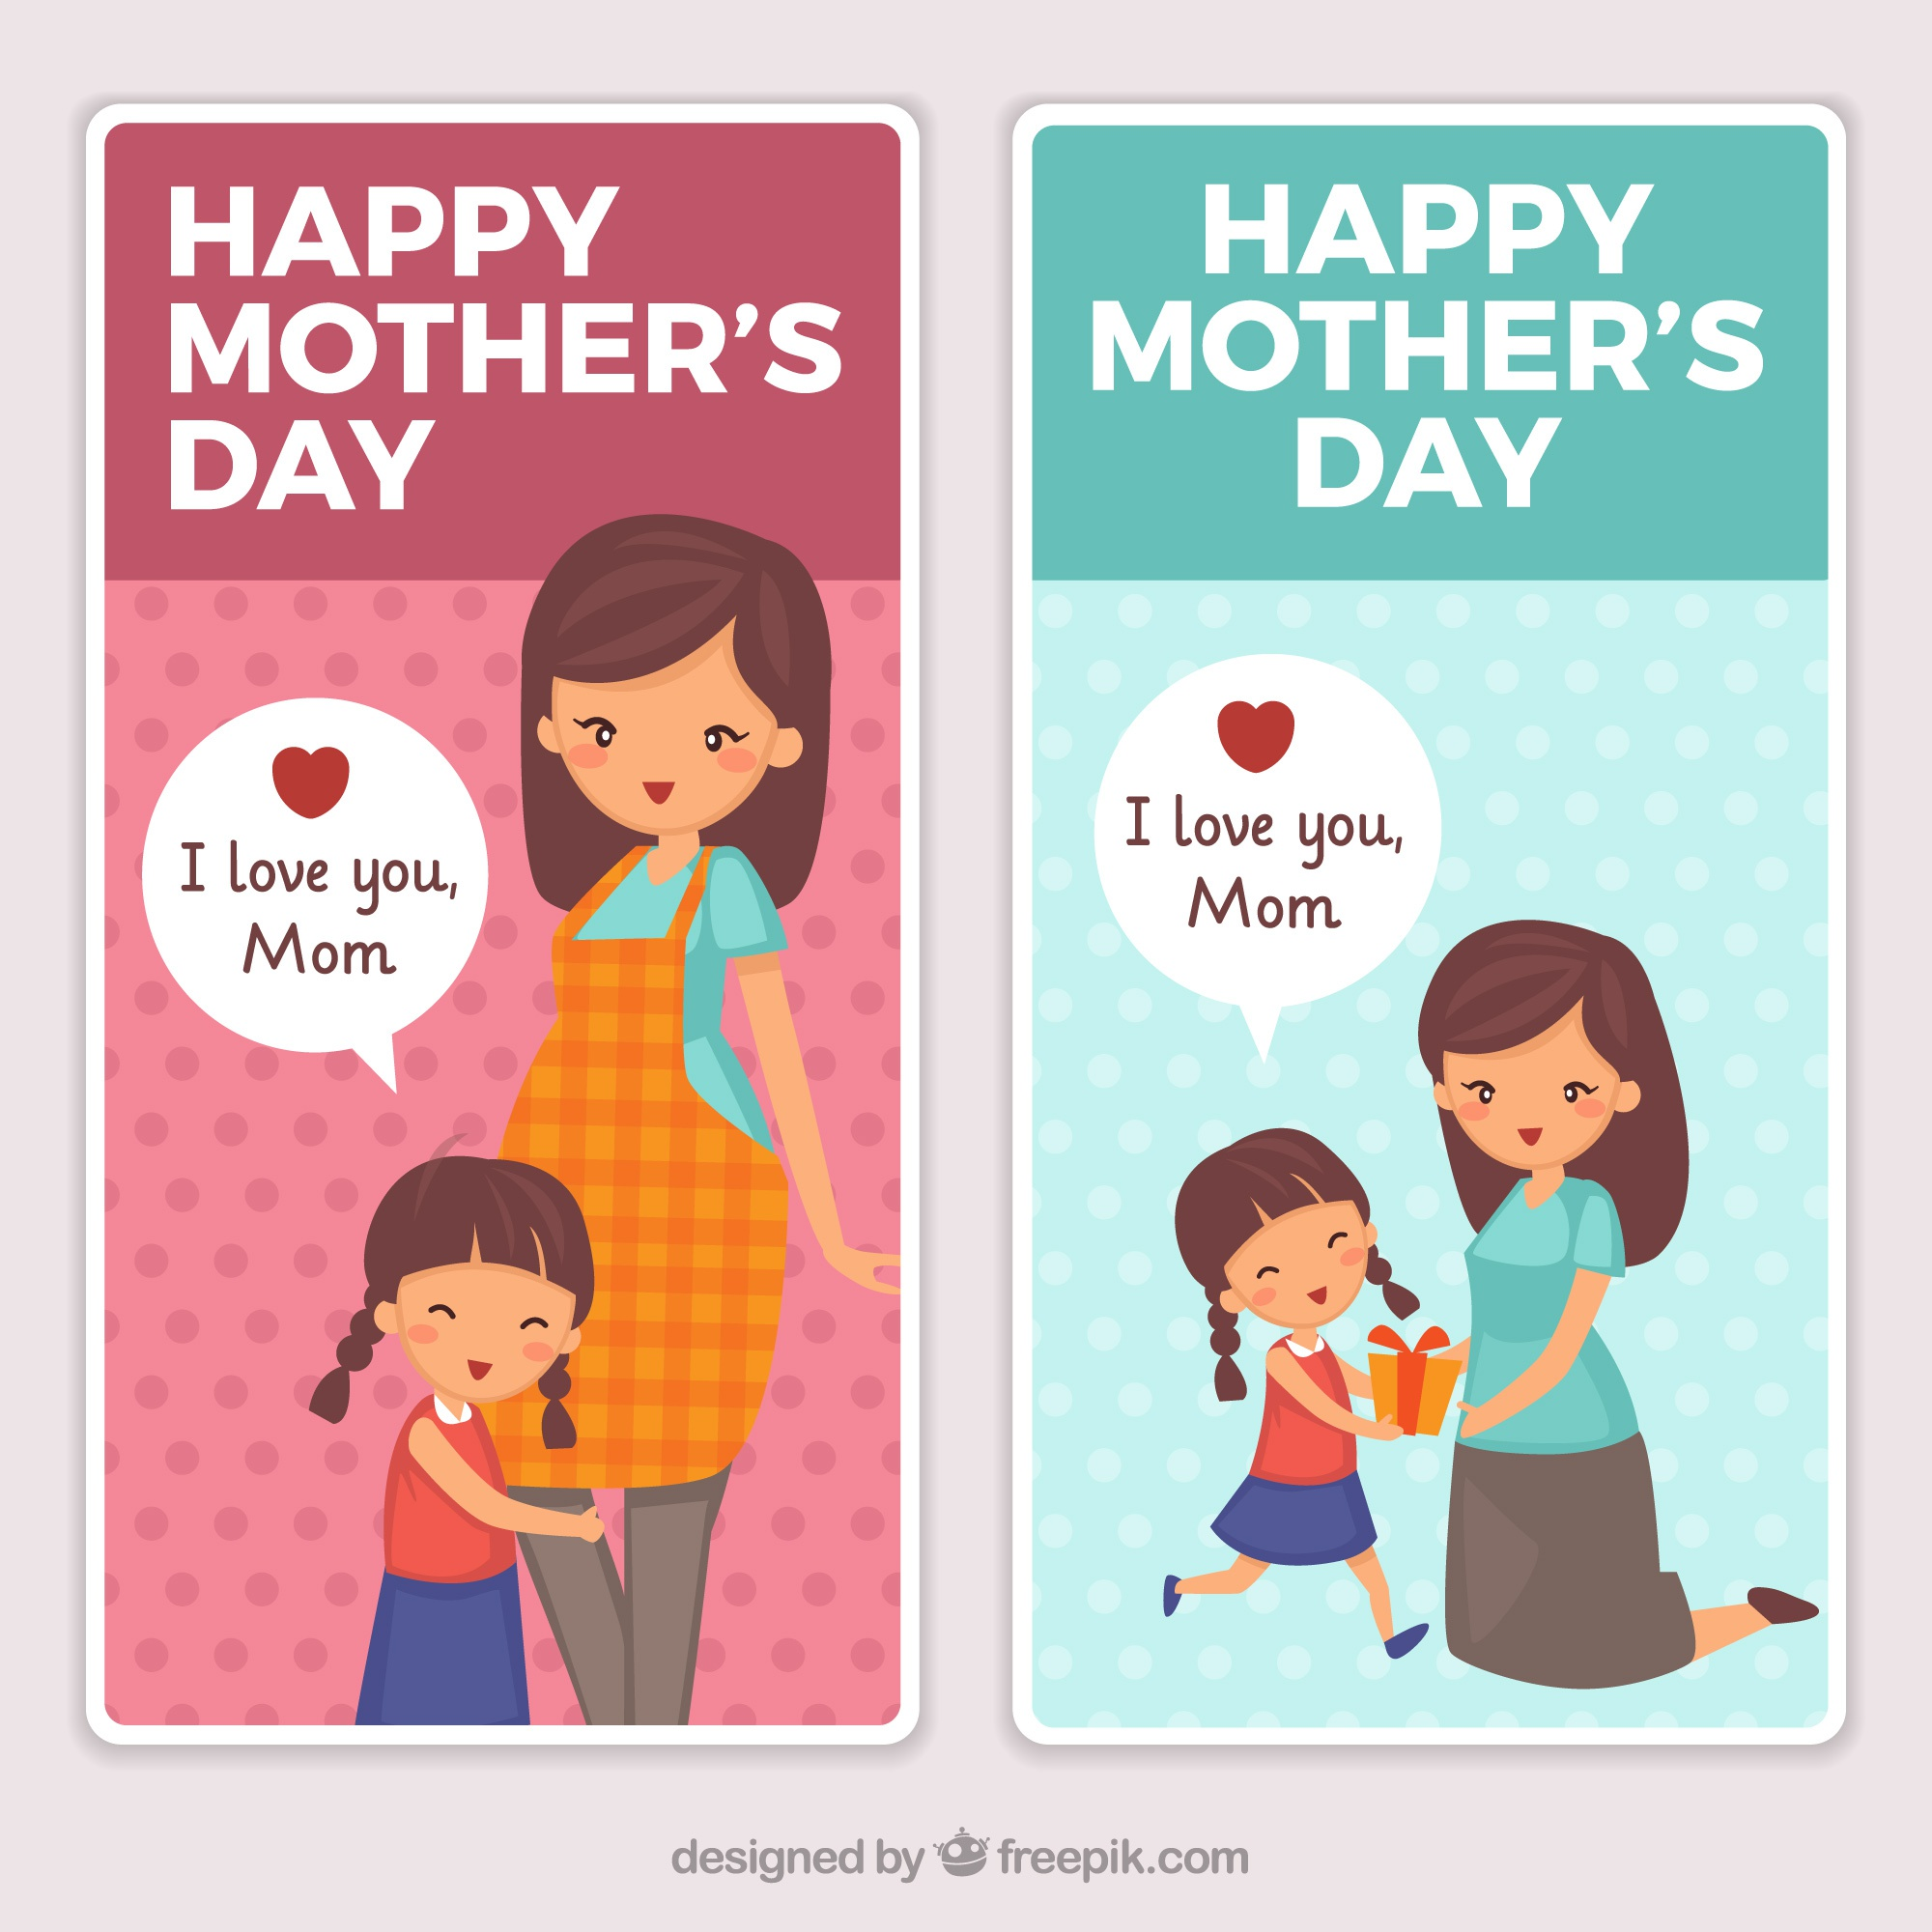 Fantastic banners of woman with her daughter for mother's day